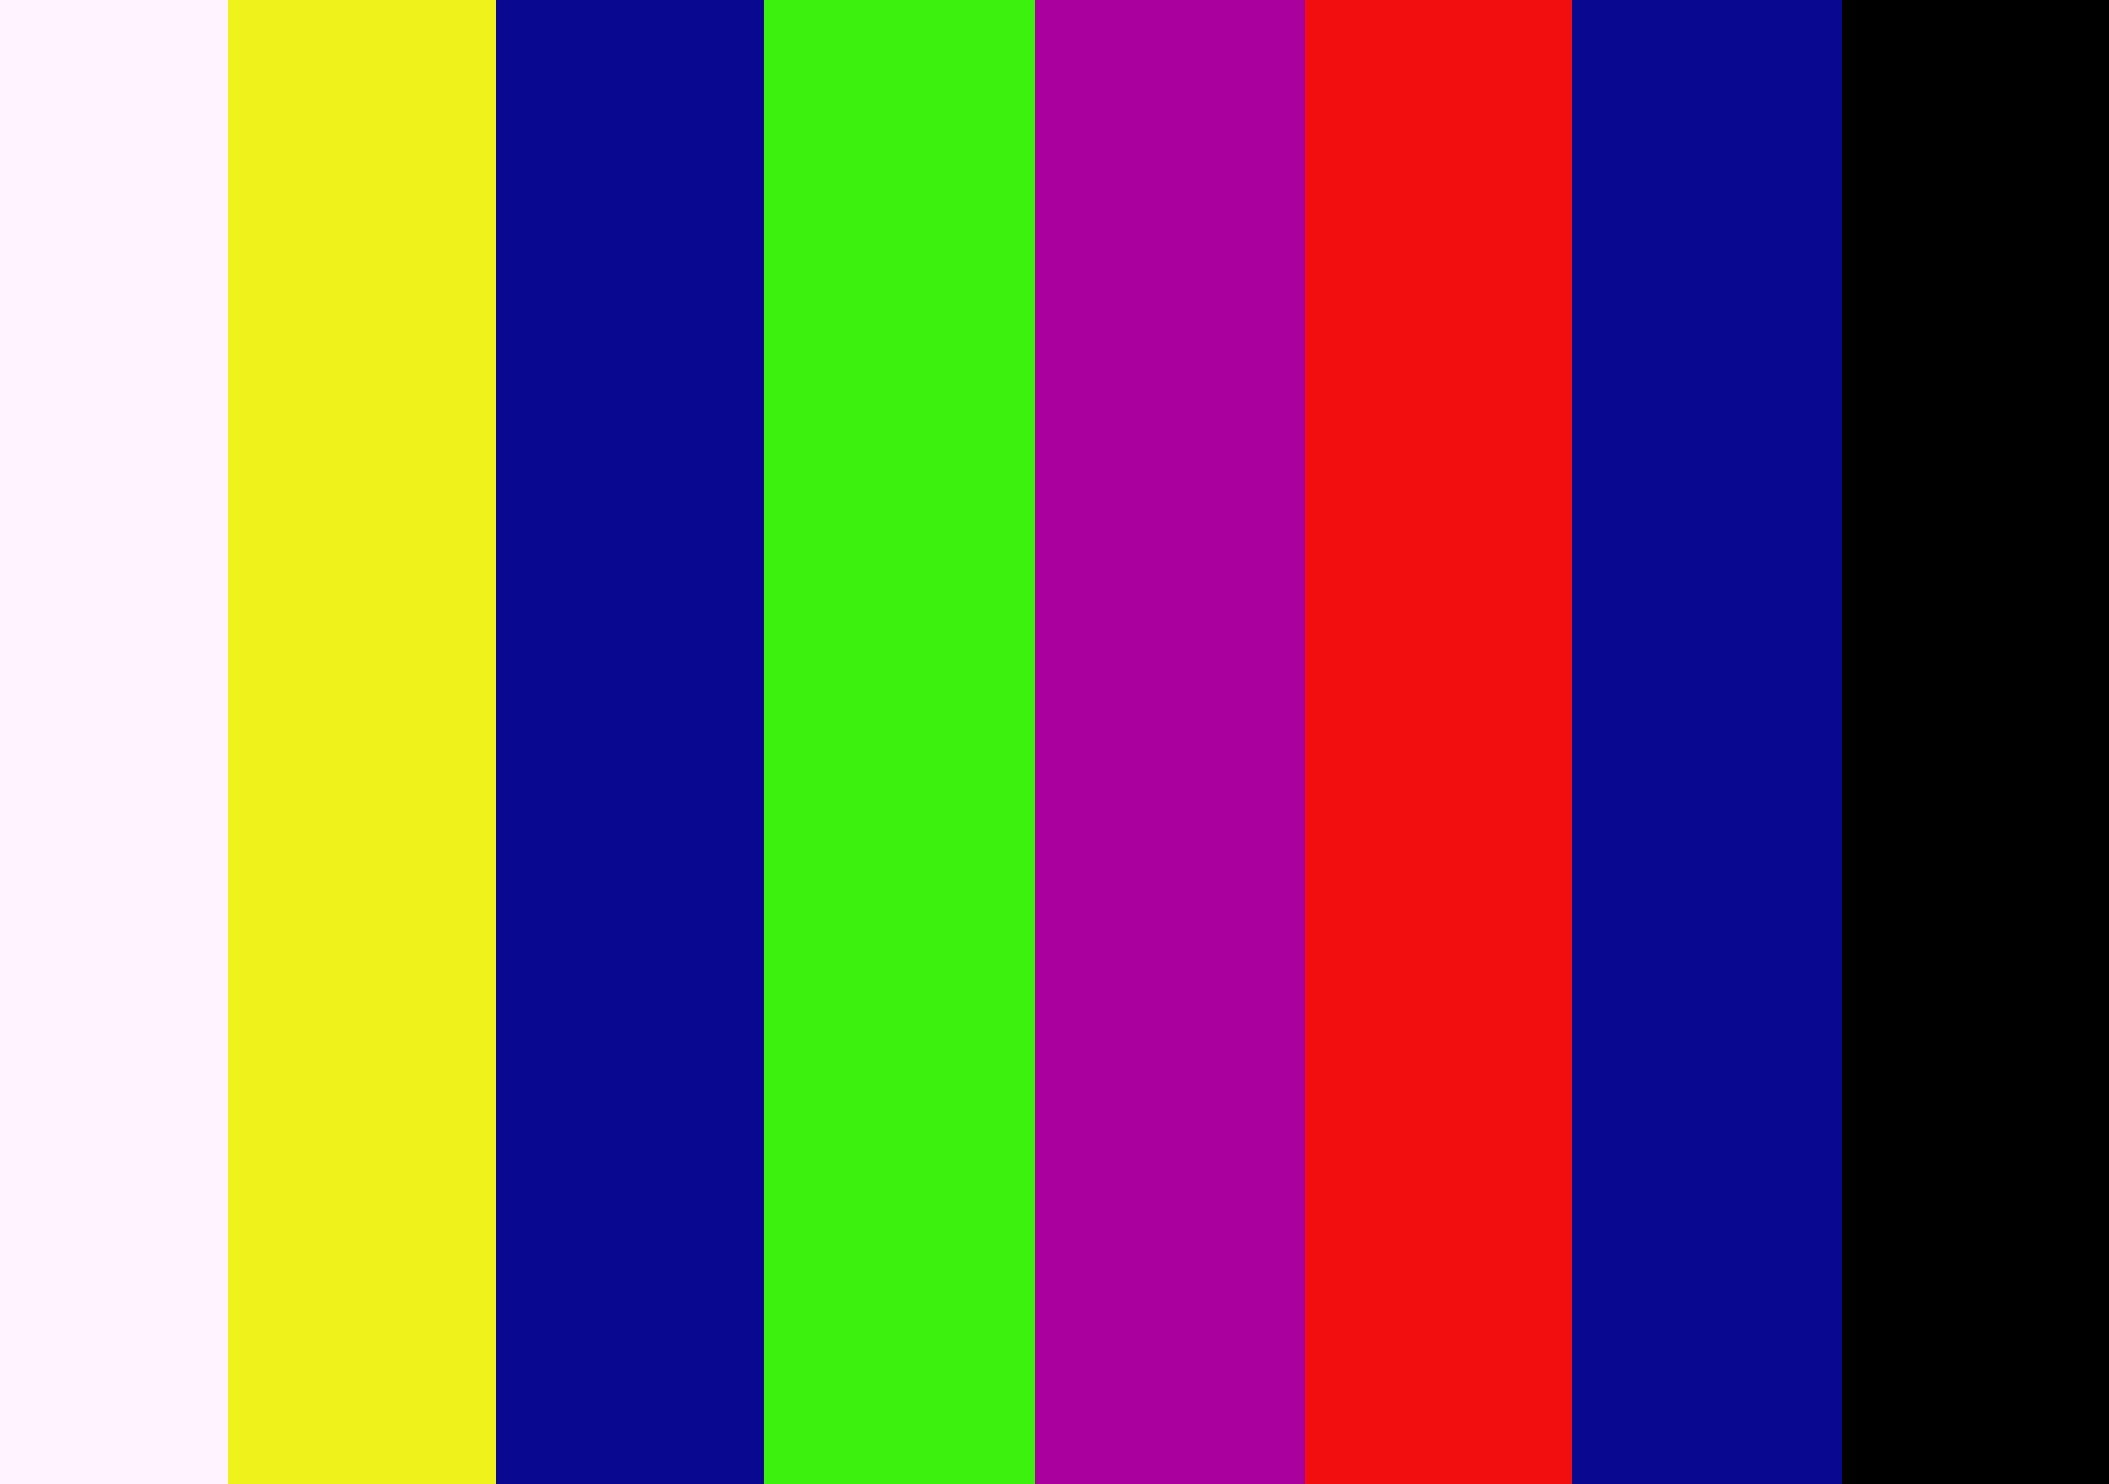 tv colour bars | Free backgrounds and textures | Cr103.com